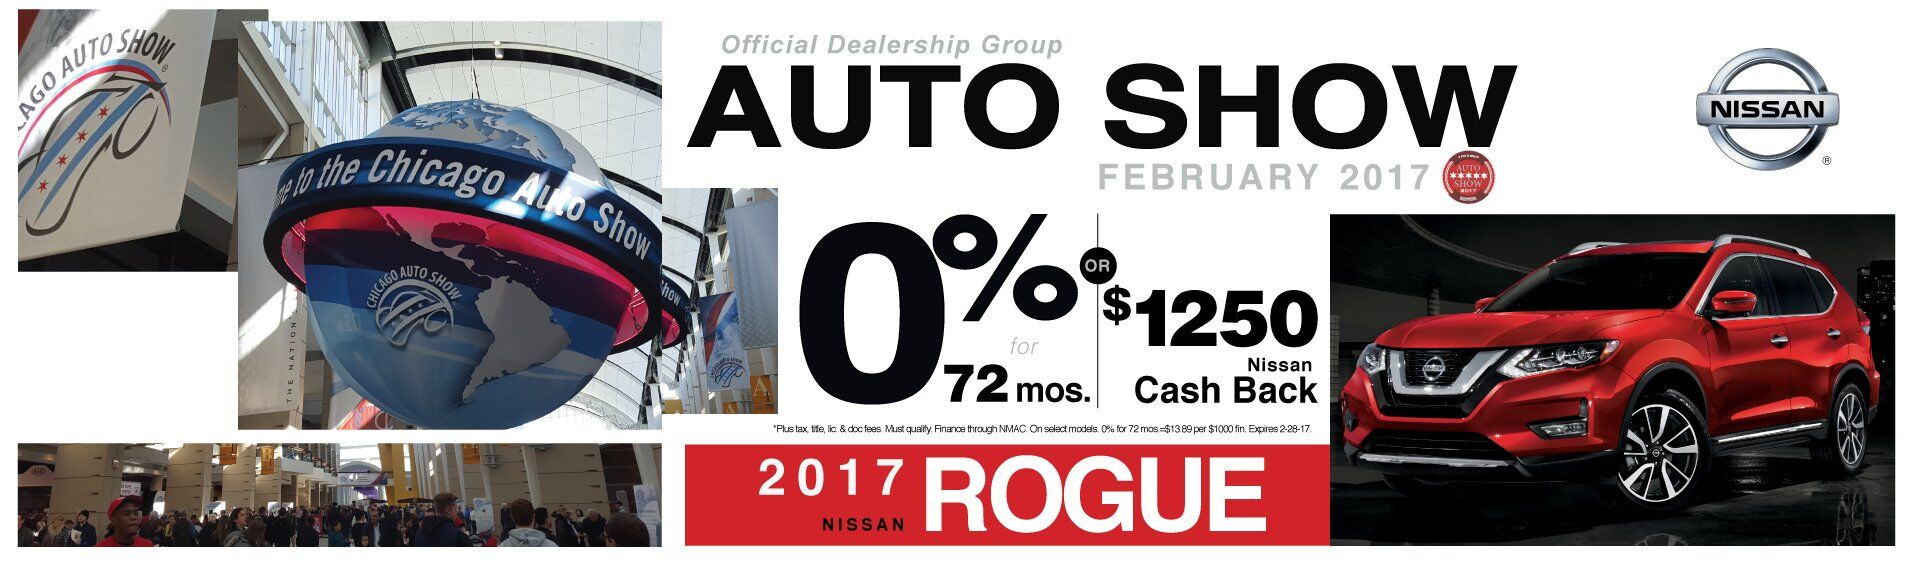 0% APR or $1250 Cash Back on 2017 Nissan rogue